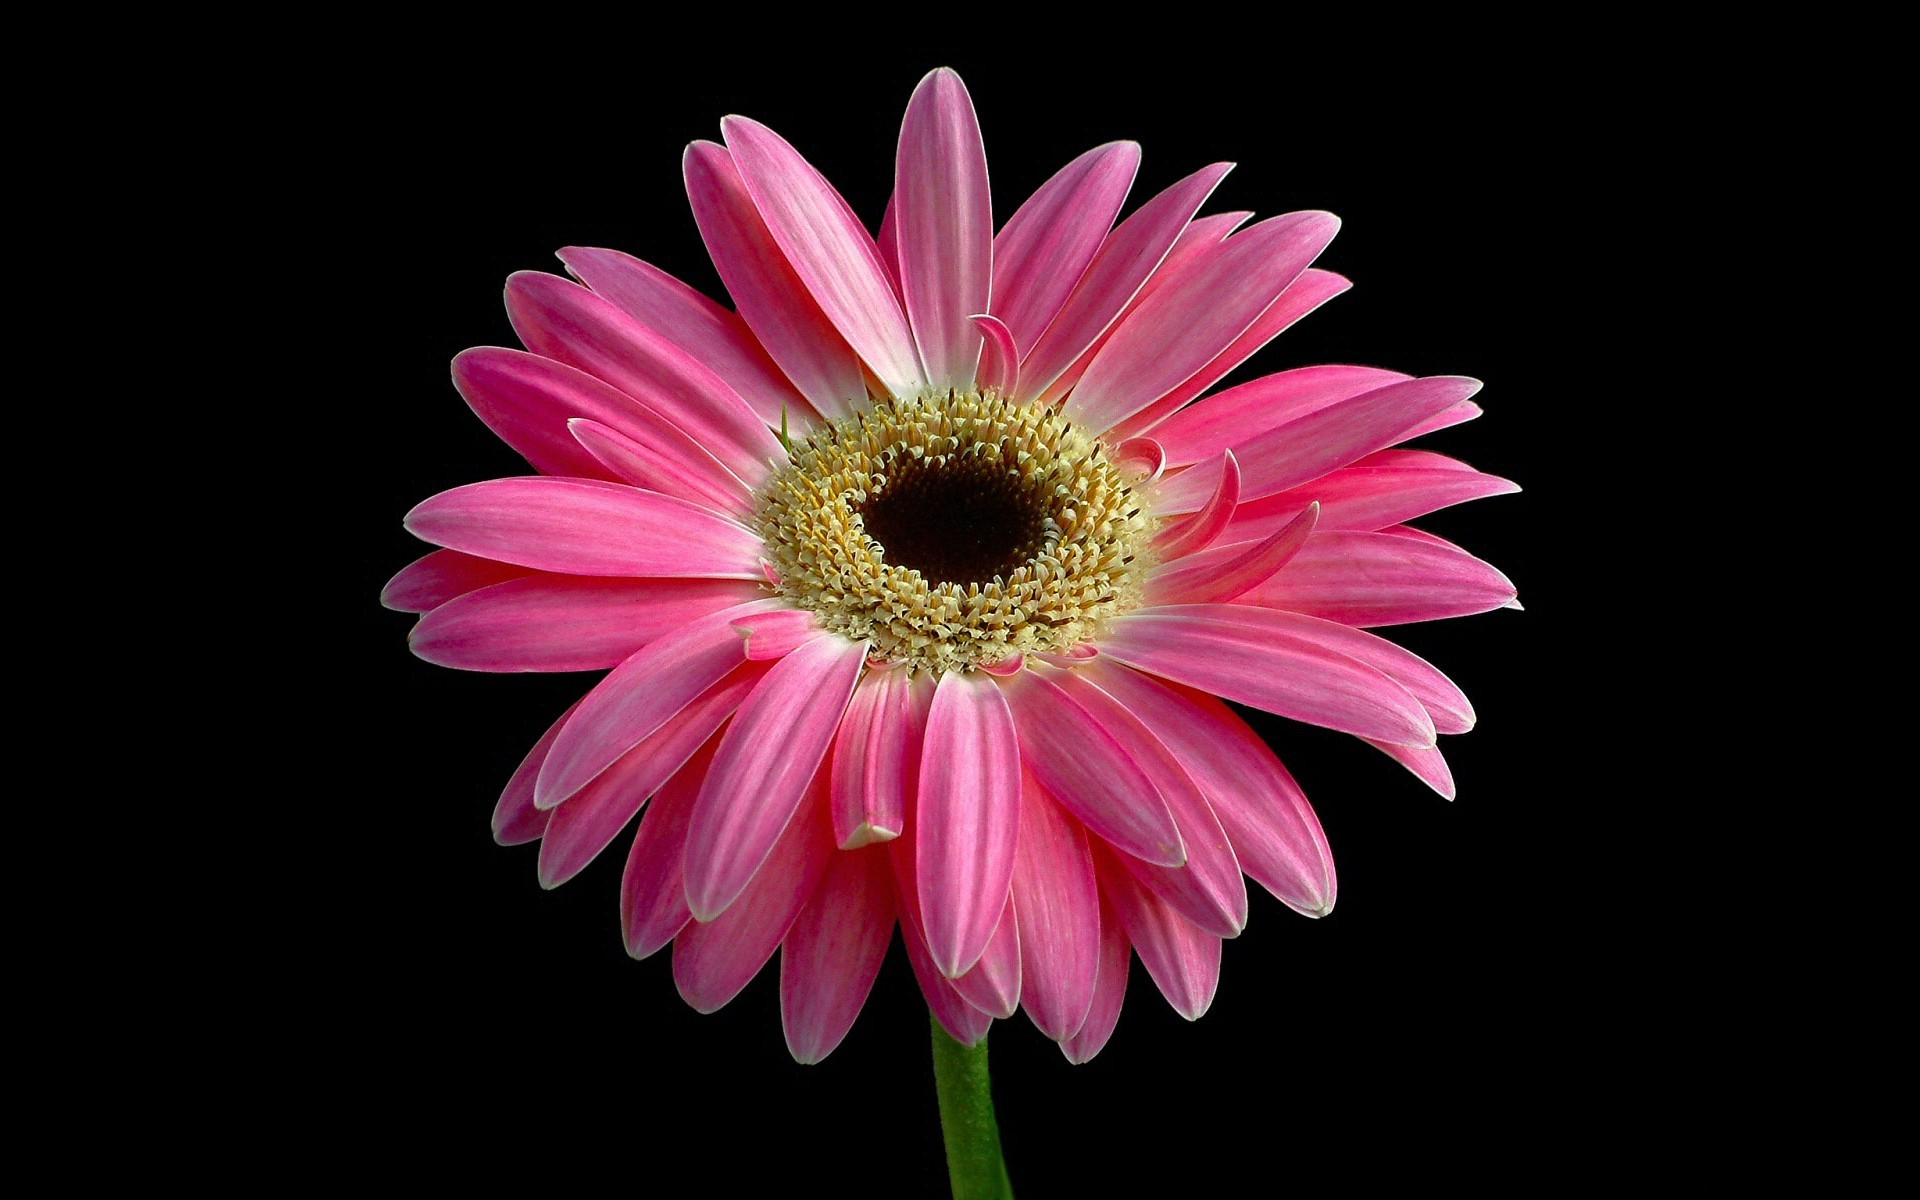 bright pink flowers wallpaper 27833